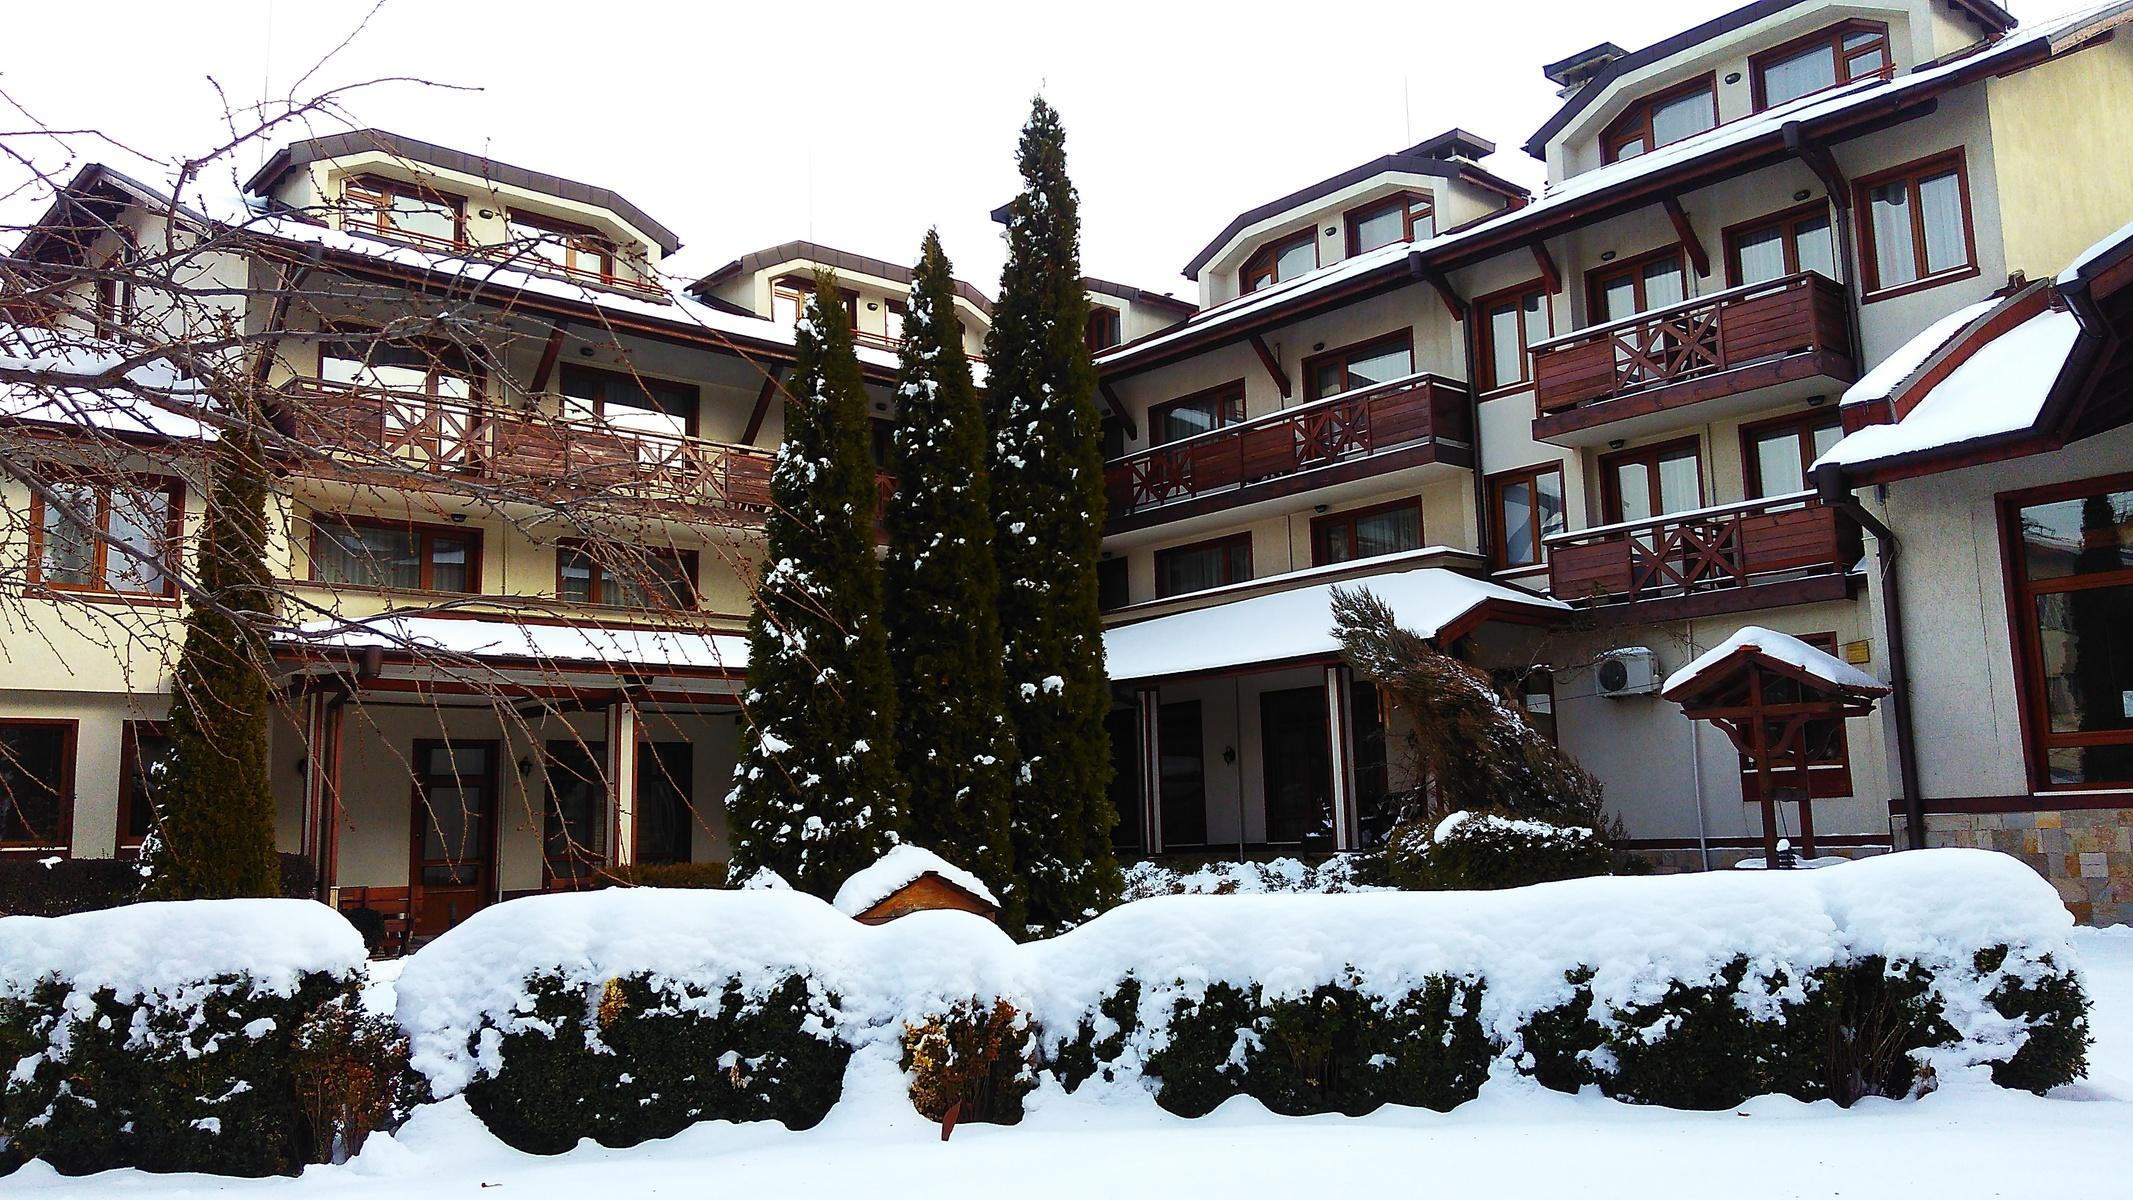 Evelina Palace in Bansko, Bulgaria